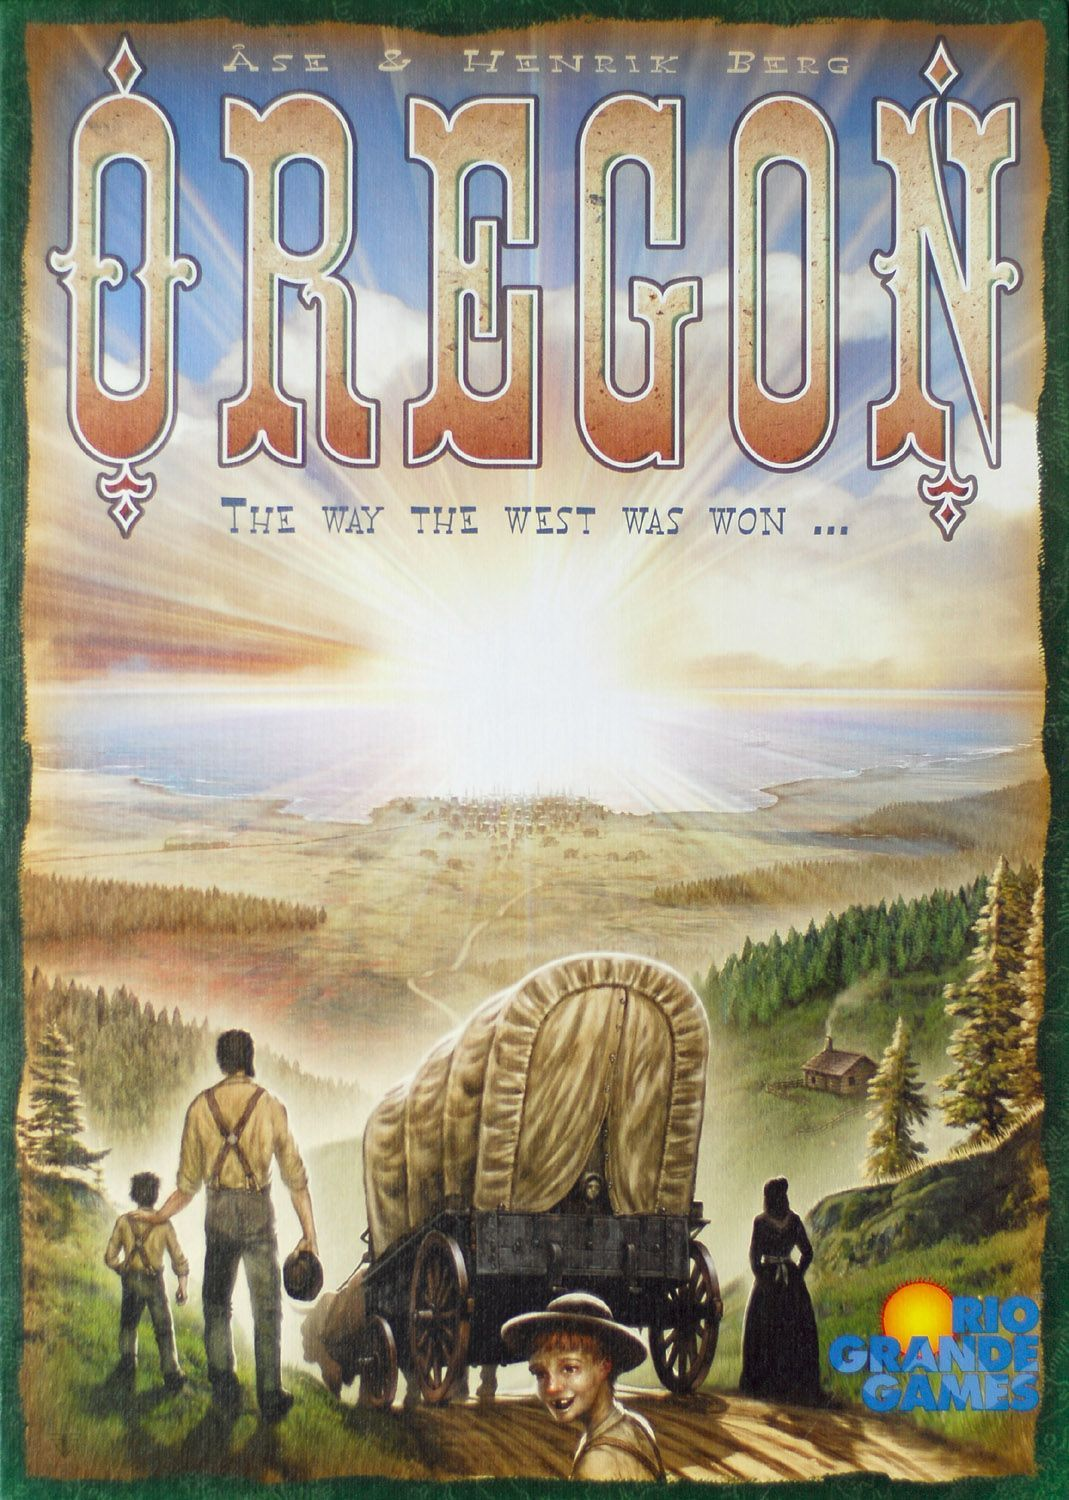 Main image for Oregon board game